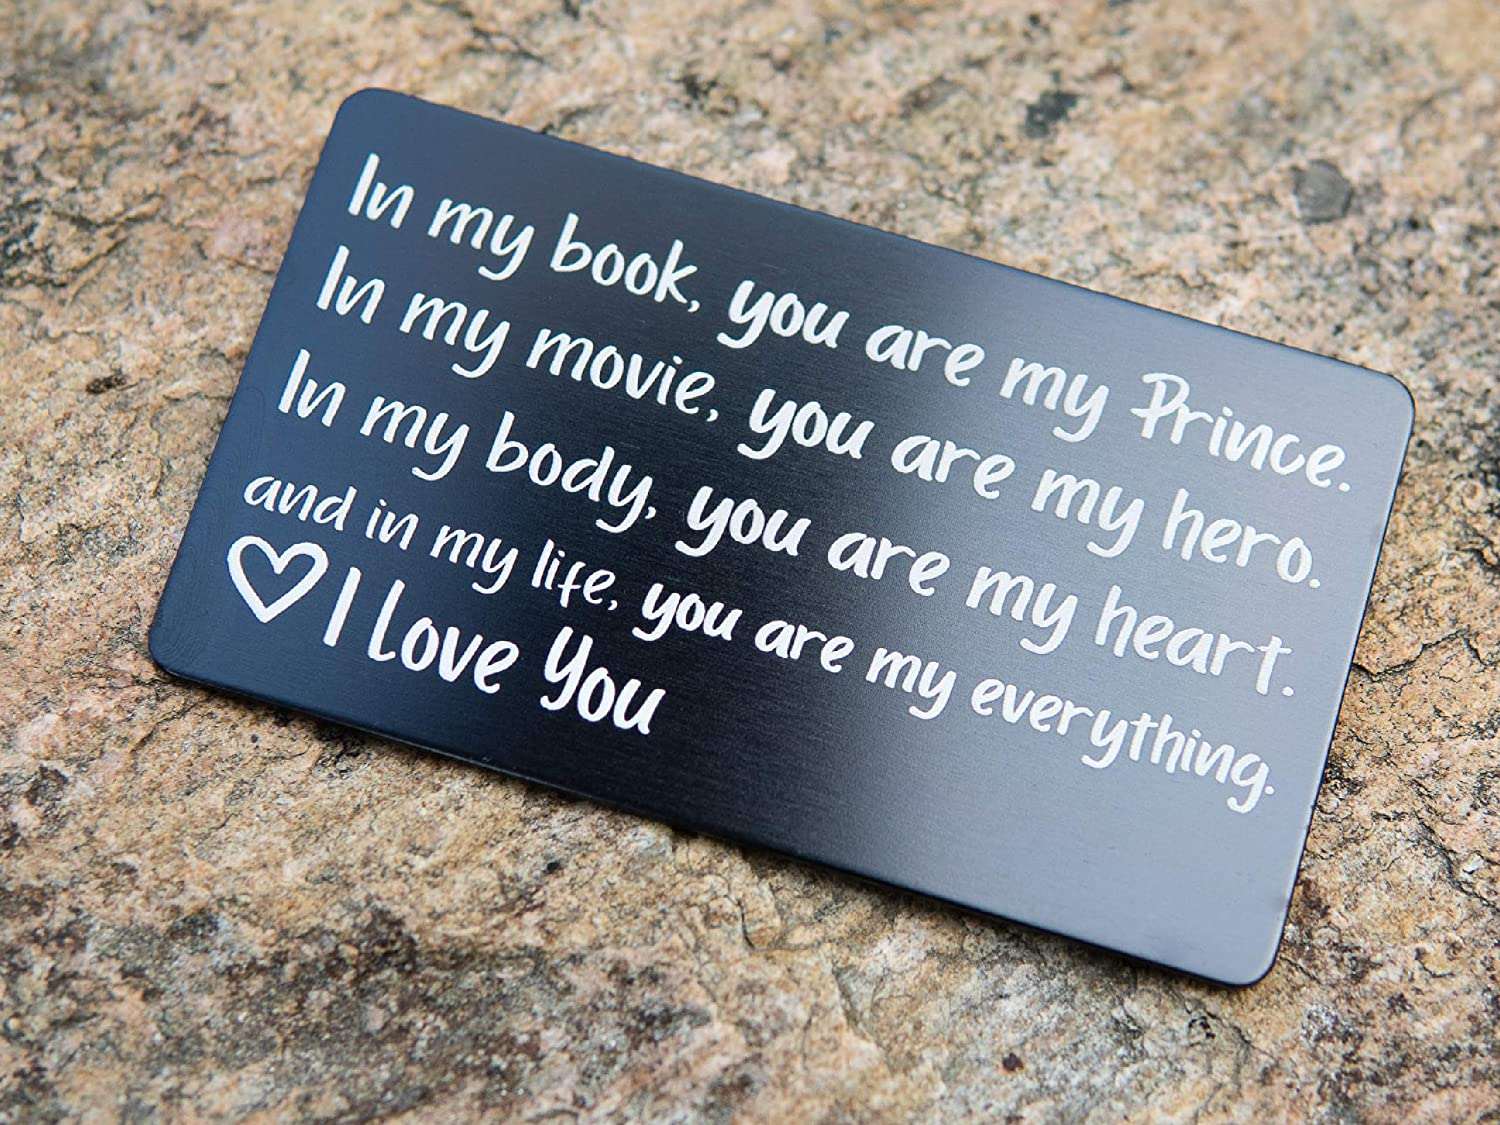 Amazon Com Wallet Card Love Note Engraved Aluminum Anniversary Gifts For Men Husband Gifts From Wife Boyfriend Gift Idea Valentines Day Meaningful Romantic Mini Wallet Insert Long Distance Handmade